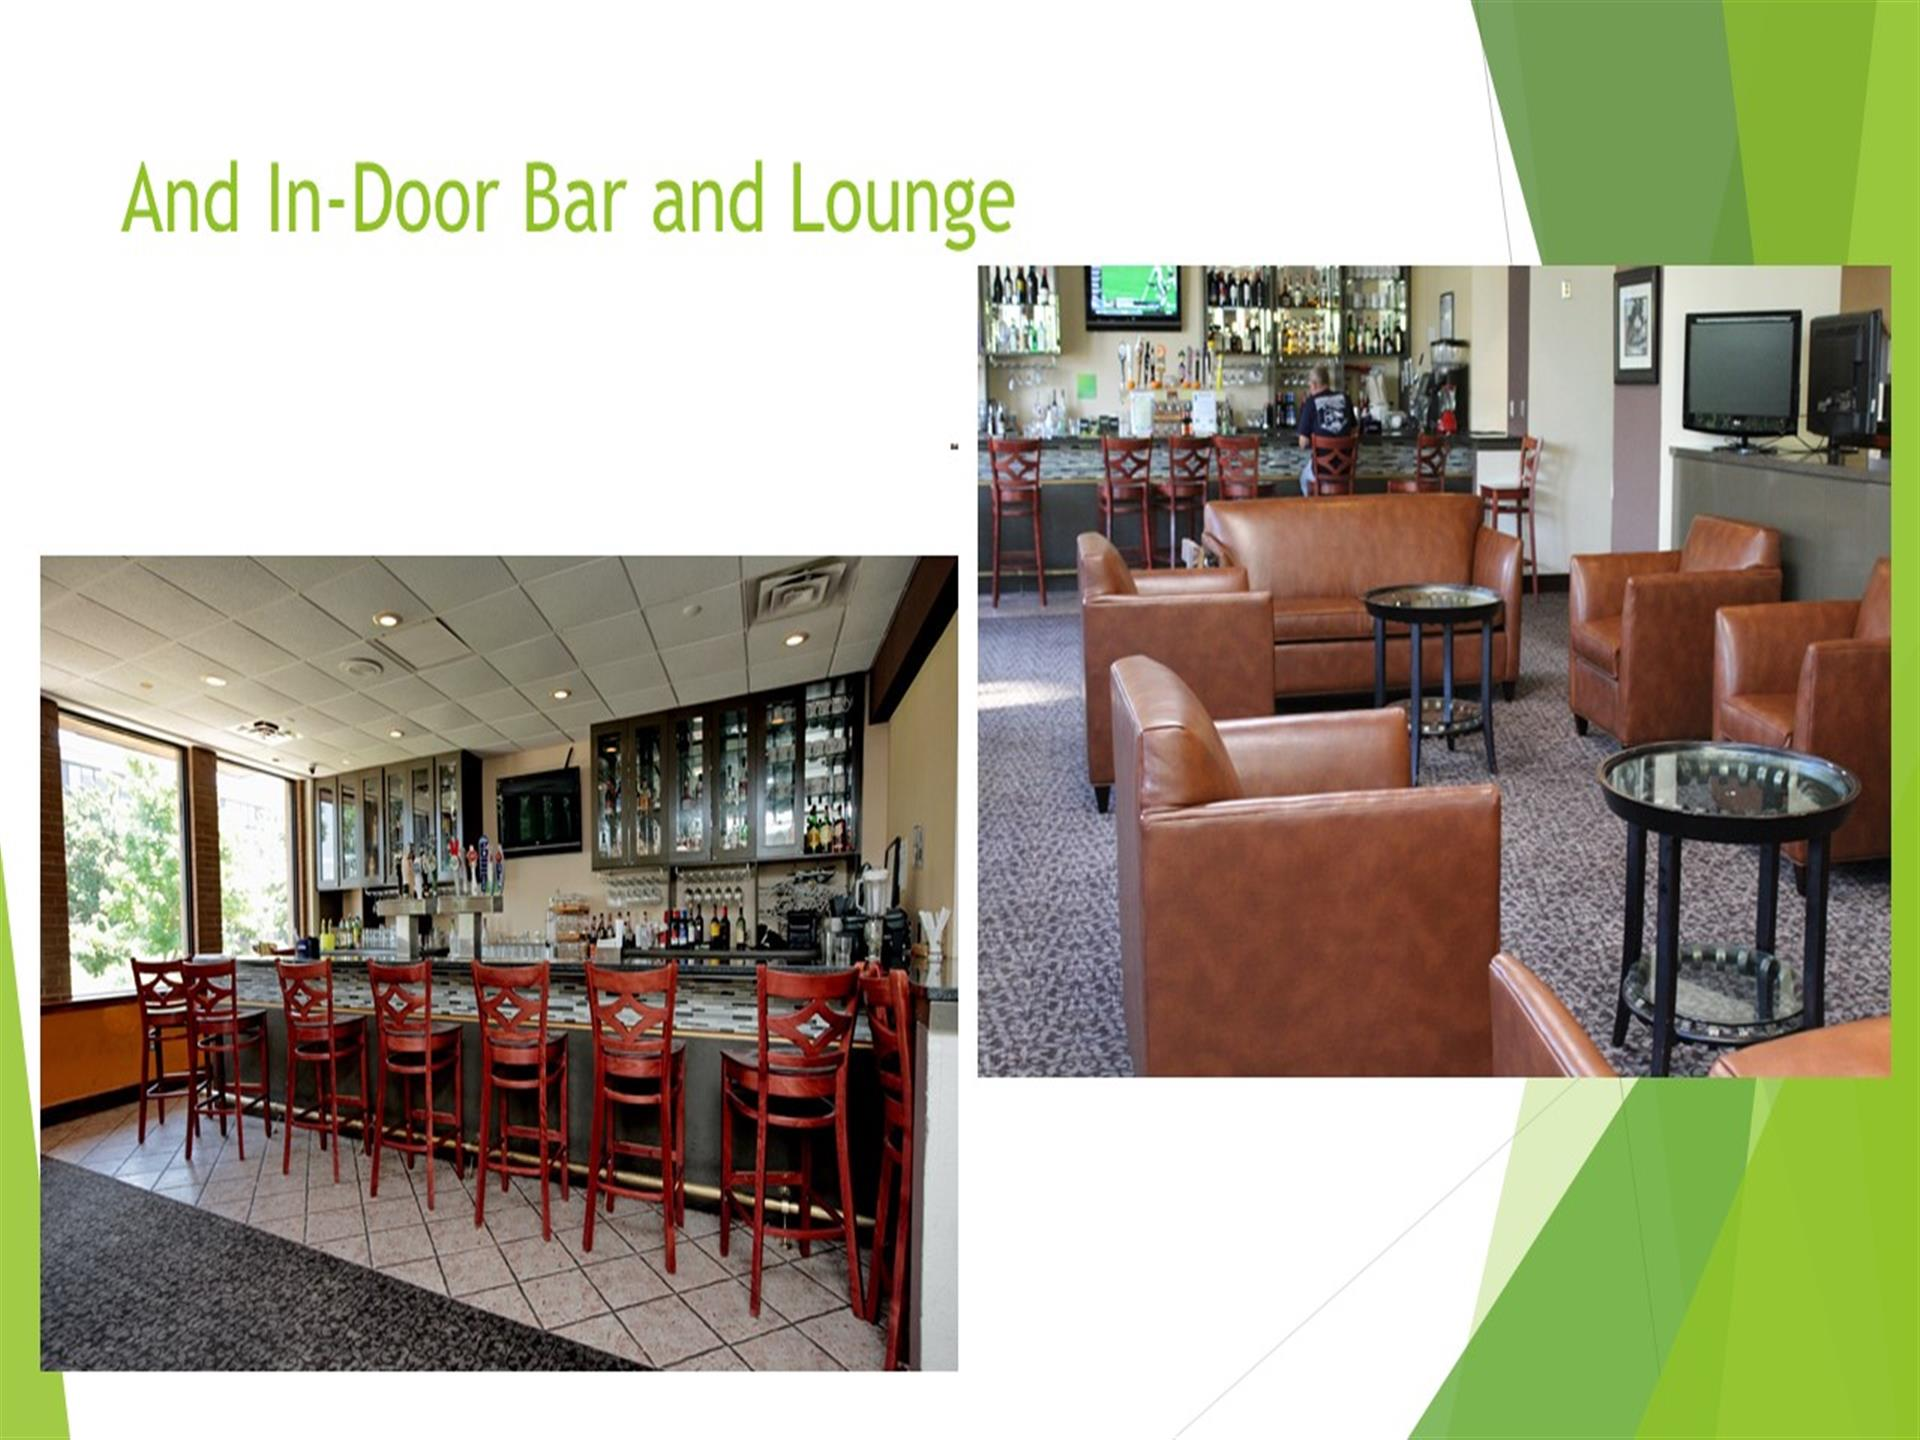 Indoor bar and lounge - bar with red chairs, leather lounge chairs